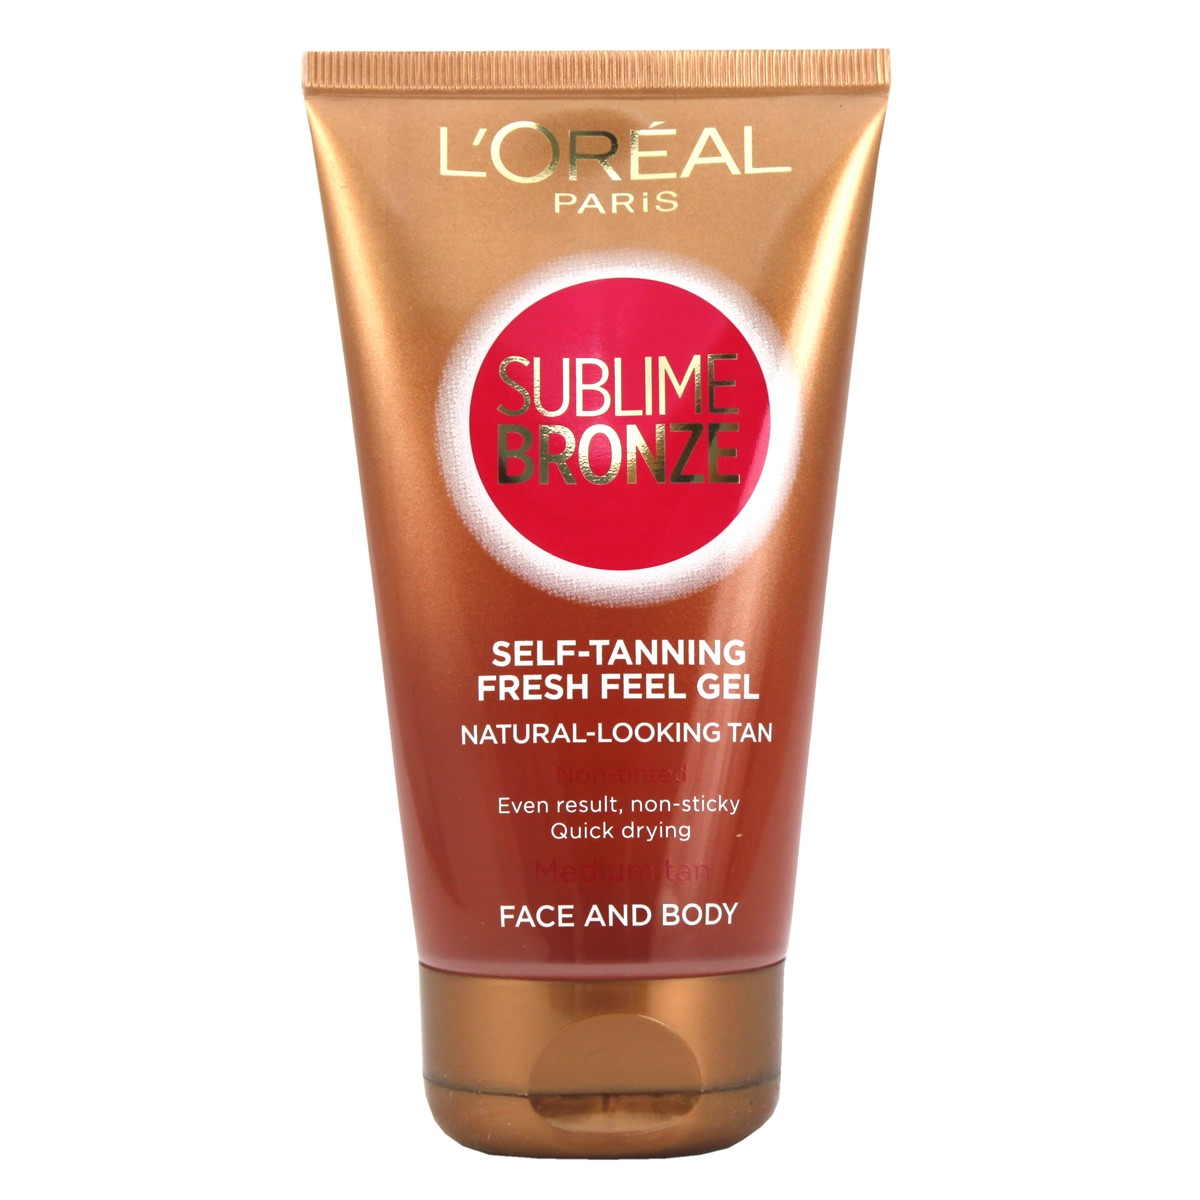 L'Oreal Paris Sublime Bronze Self-Tanning Fresh Feel Gel